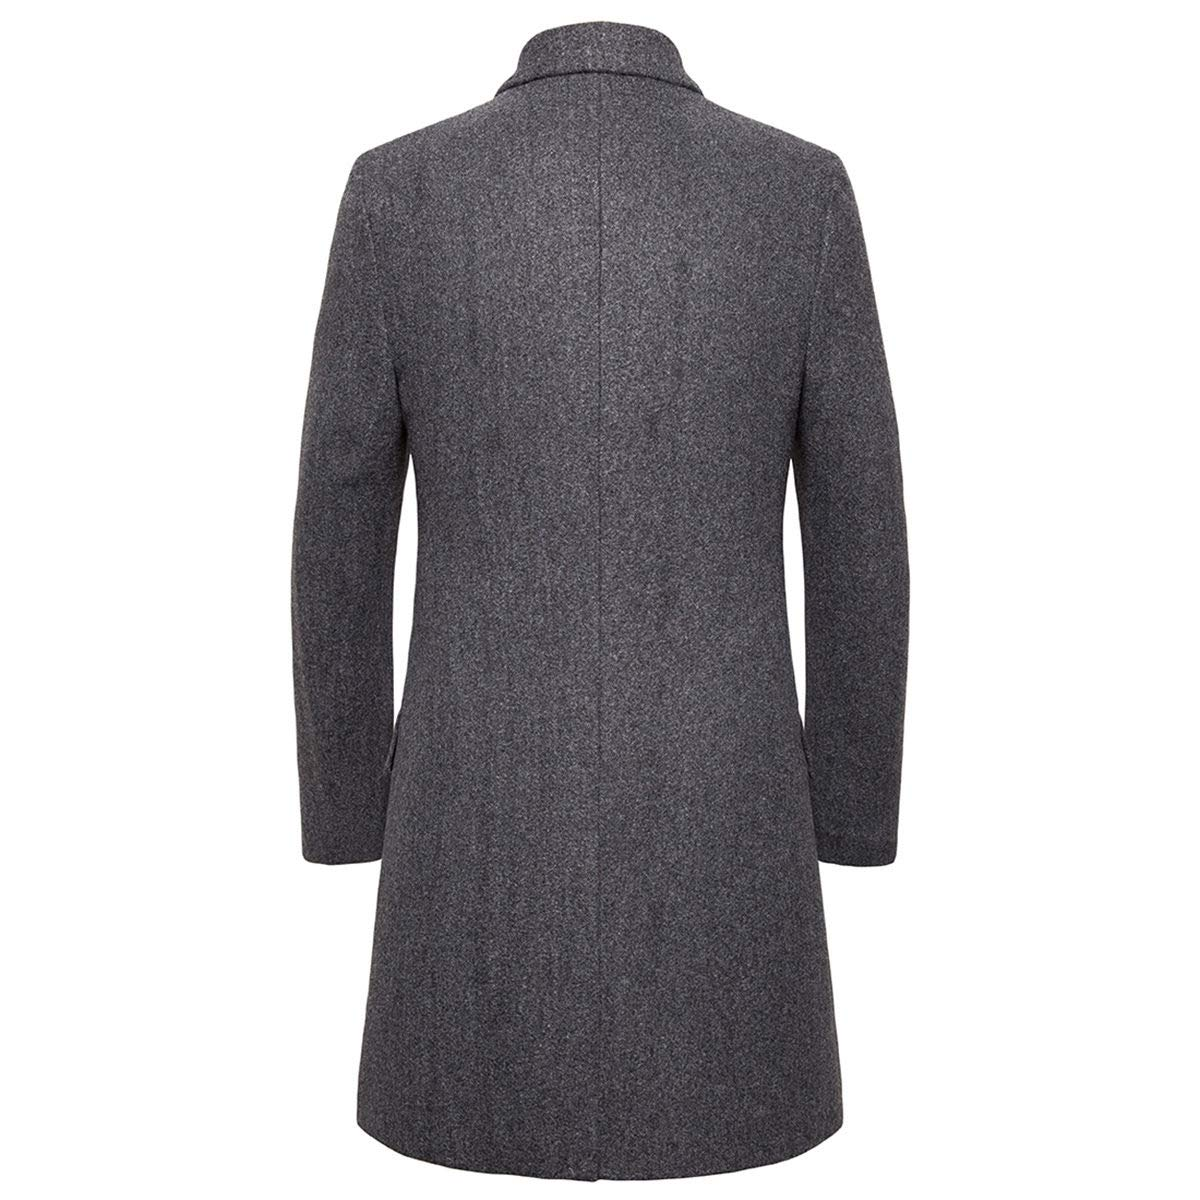 AOWOFS Mens Long Trench Coat Slim Fit Single Breasted Business Lapel Thick Warm Jacket